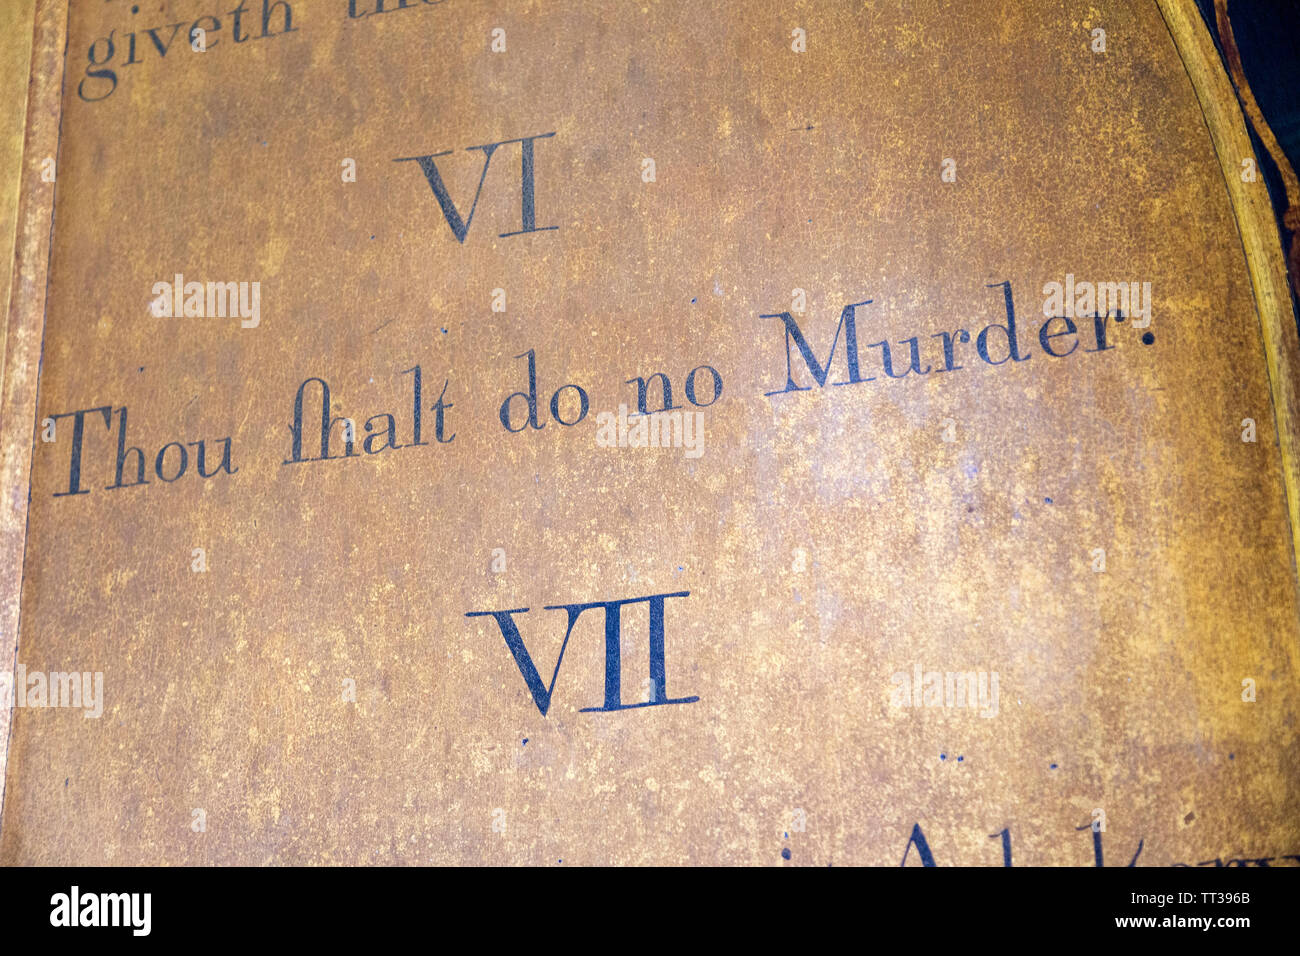 Historic interior of Saint John the Baptist church, Mildenhall, Wiltshire, England, UK 'Thou shalt do no murder' commandment - Stock Image